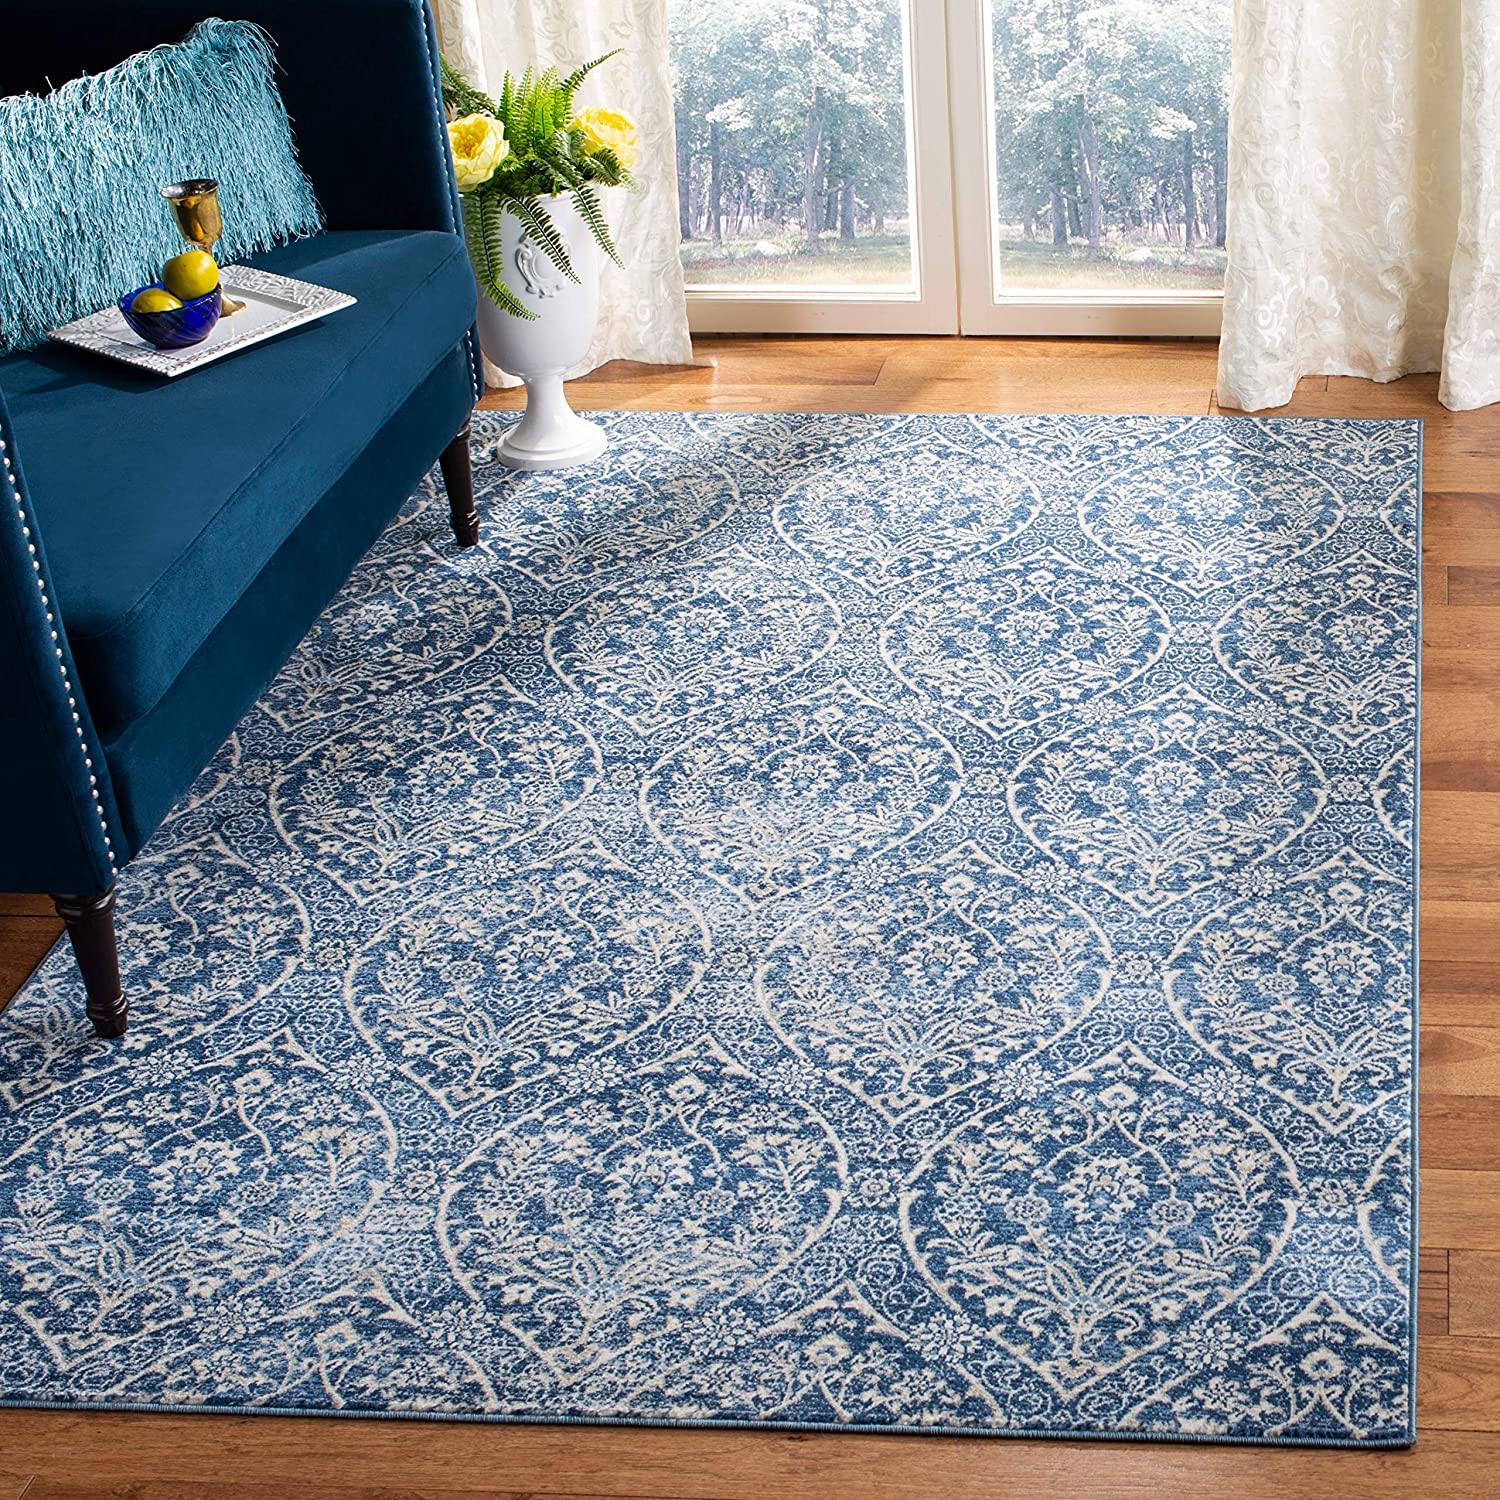 Safavieh Industry No. 1 Brentwood Collection BNT860M 4 years warranty Floral Trellis Ogee Damask